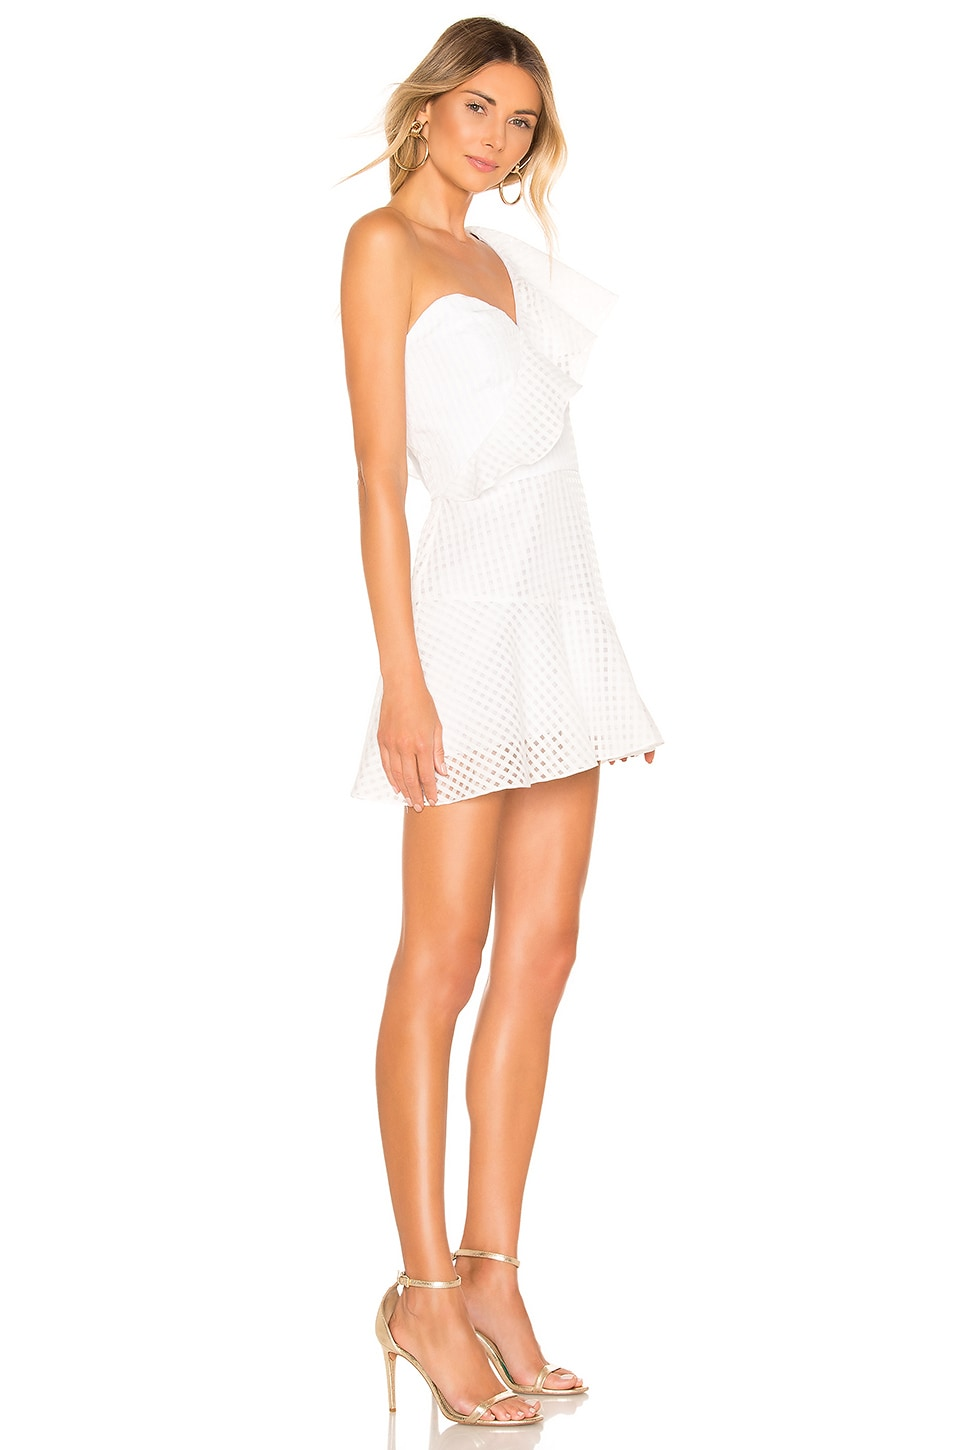 Mckinnon Dress, view 2, click to view large image.